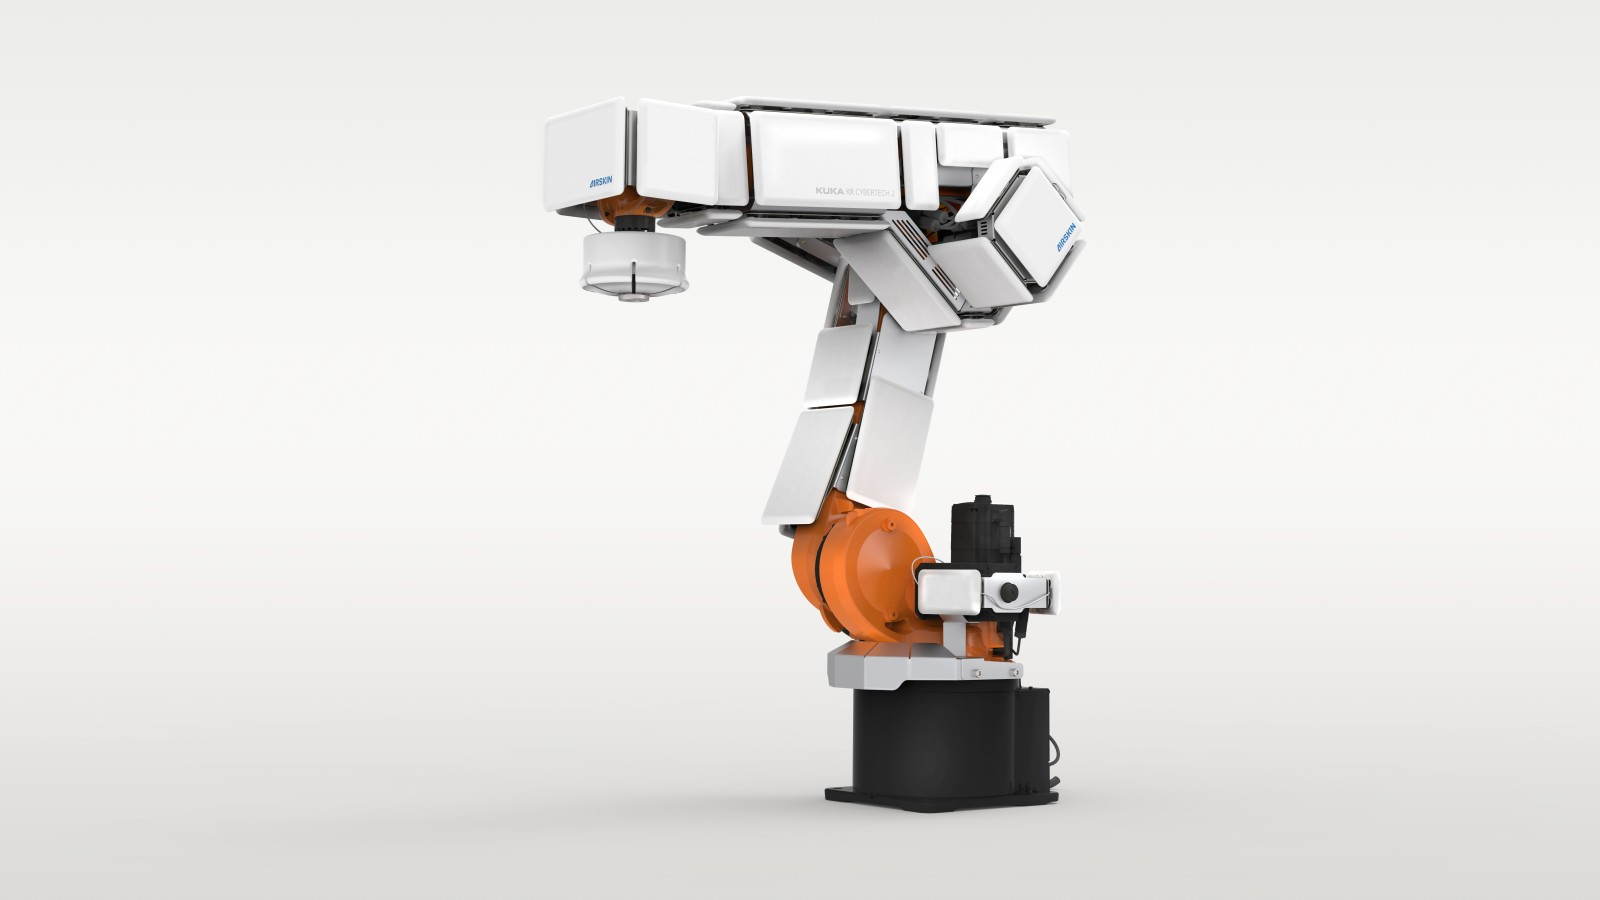 KUKA cyber tech 2 industrial robot with AIRSKIN